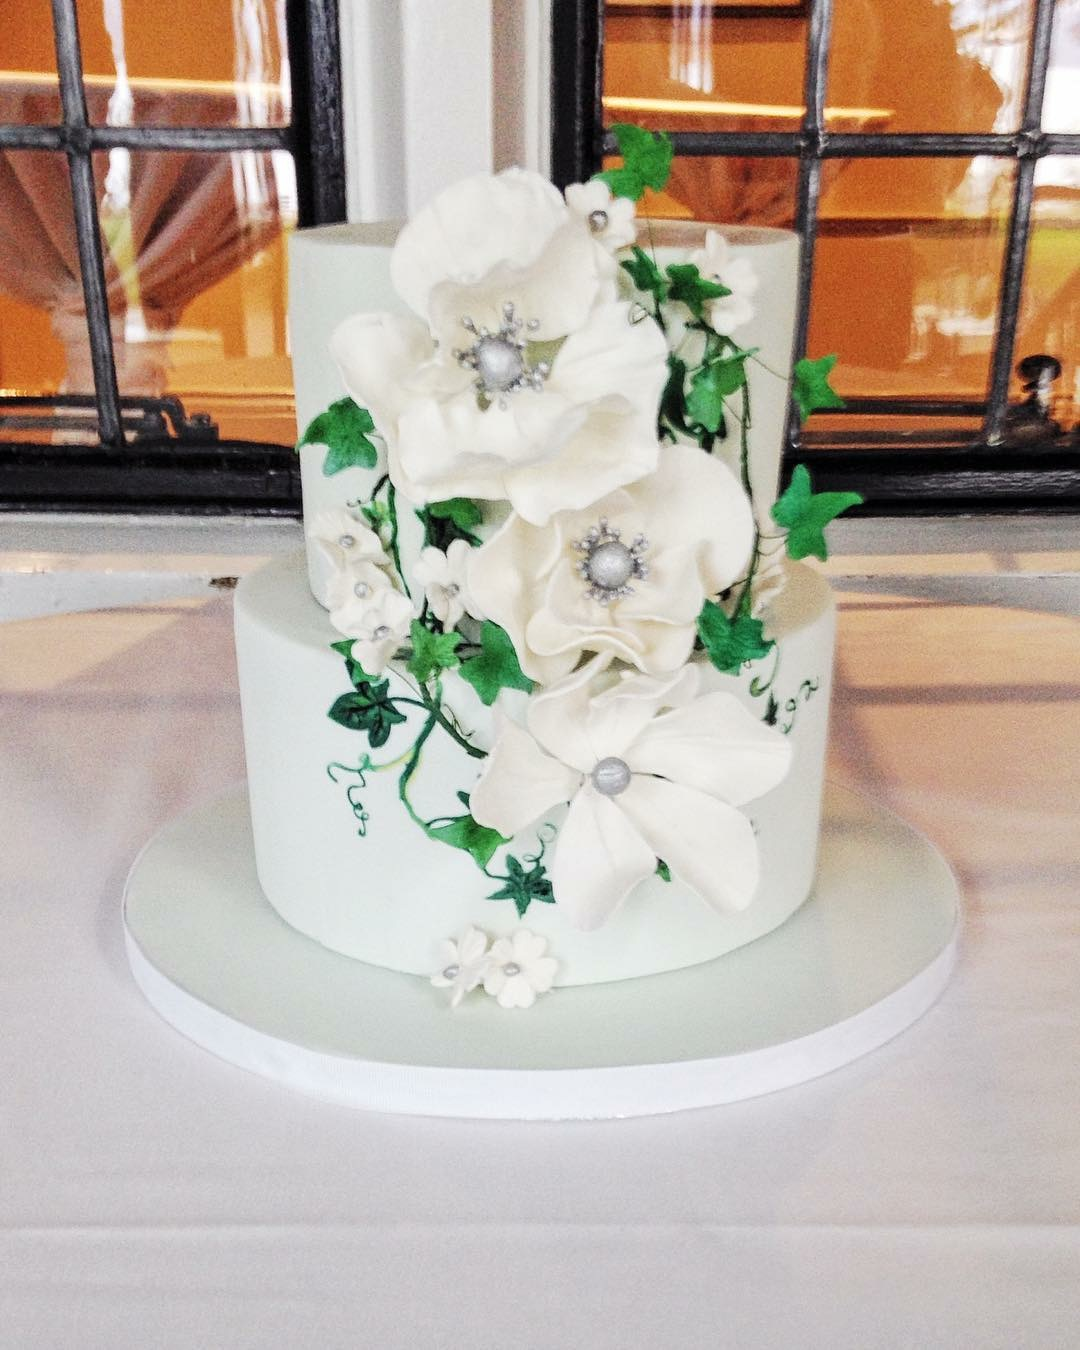 Pastel green wedding cake with sugar flowers